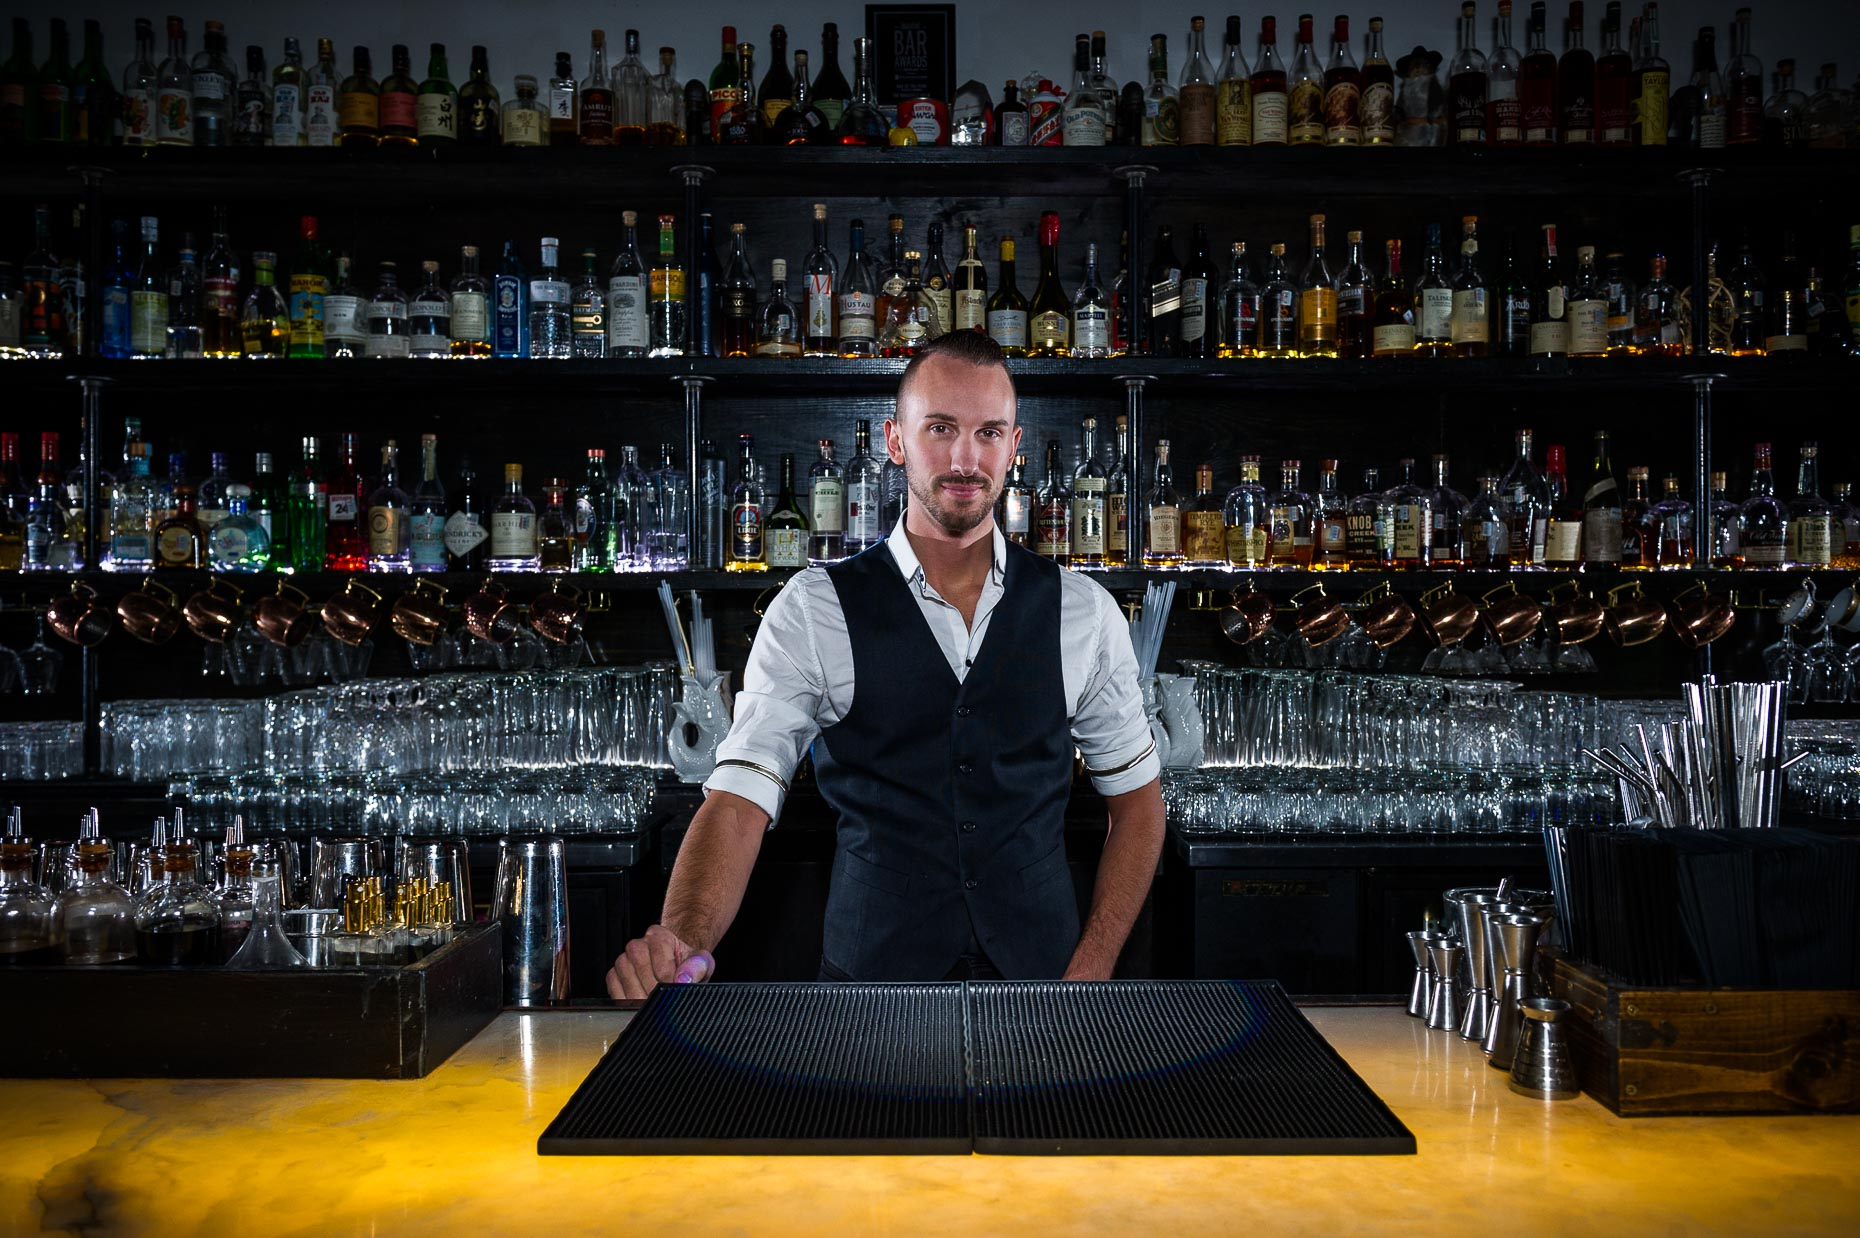 aaron-ingrao-keepers-of-the-craft-cocktails-across-america-roosevelt-room-austin-47-Edit